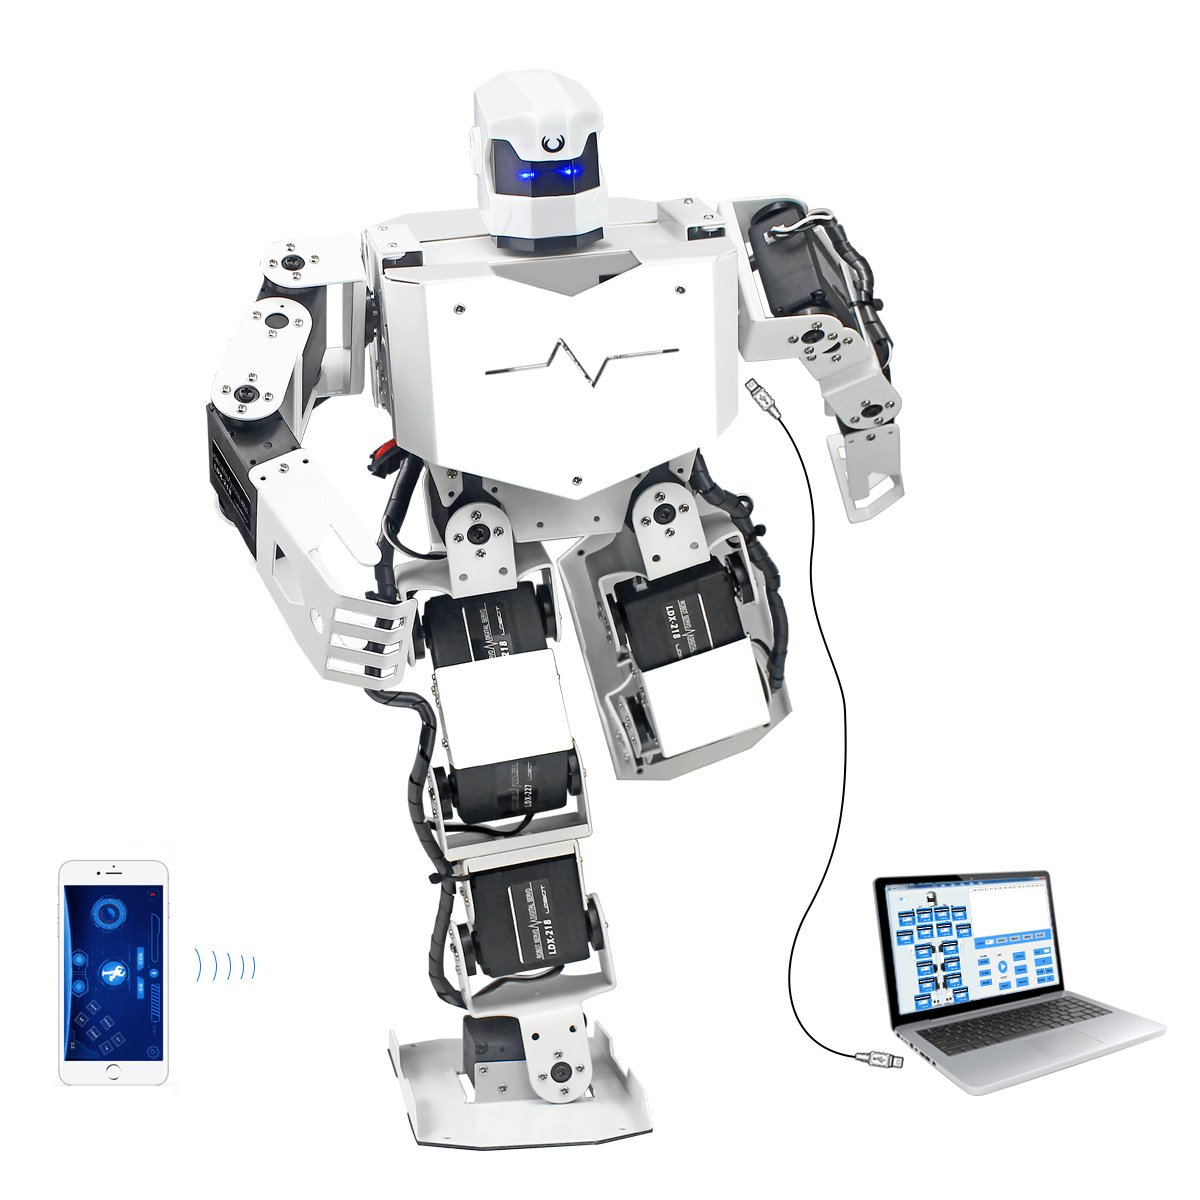 Hiwonder H3S 16DOF Biped Humanoid Robot Kit with Free APP, MP3 Module, Detailed Video Tutorial Support Sing Dance(Assembled) by LewanSoul (Image #1)